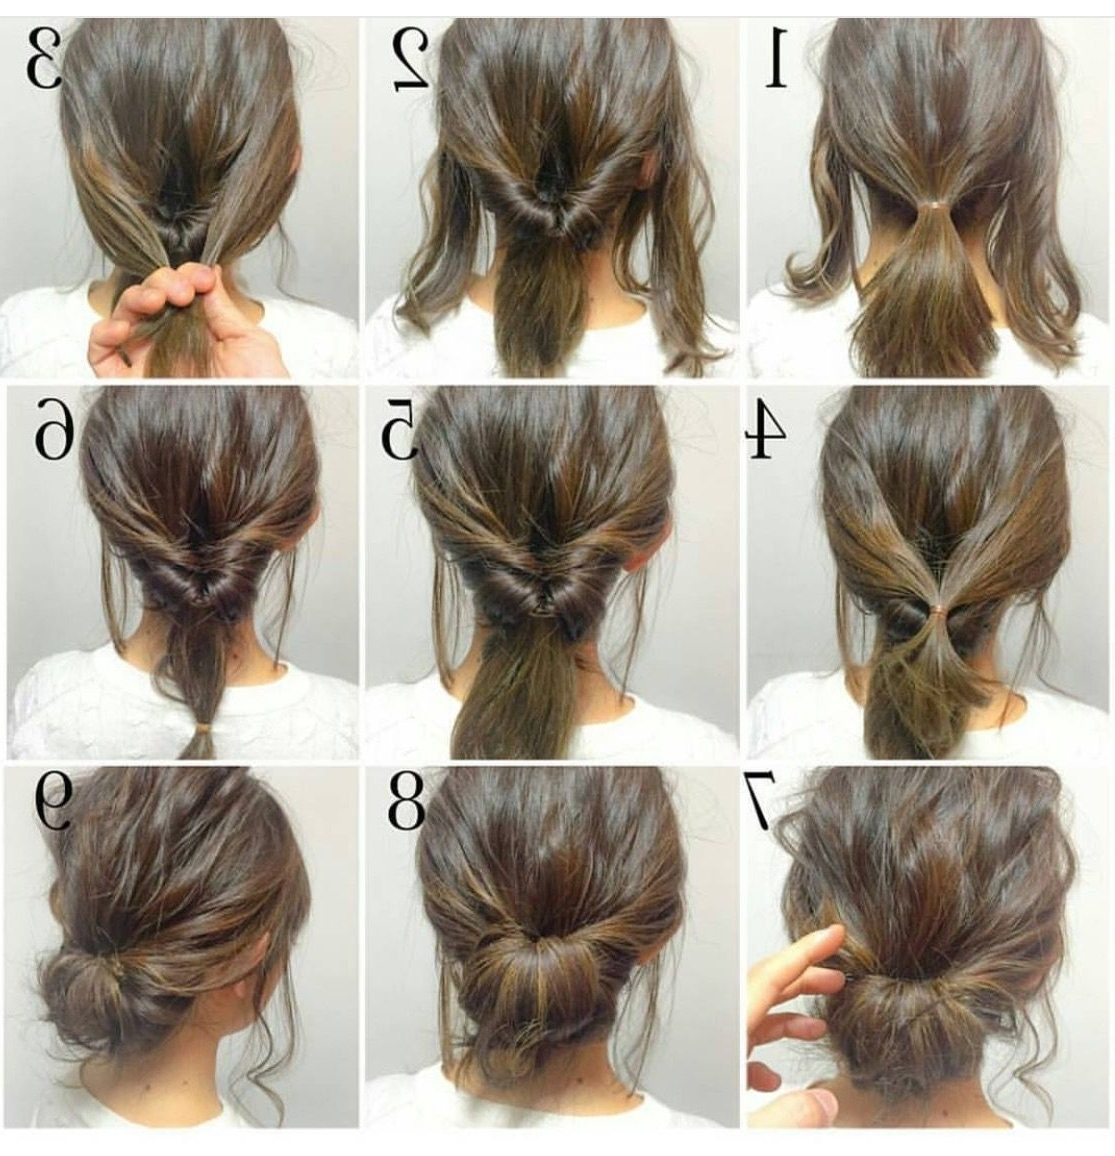 4 Messy Updos For Long Hair | Hairz | Pinterest | Updos, Hair Style In Easy Updo Hairstyles For Long Straight Hair (View 12 of 15)